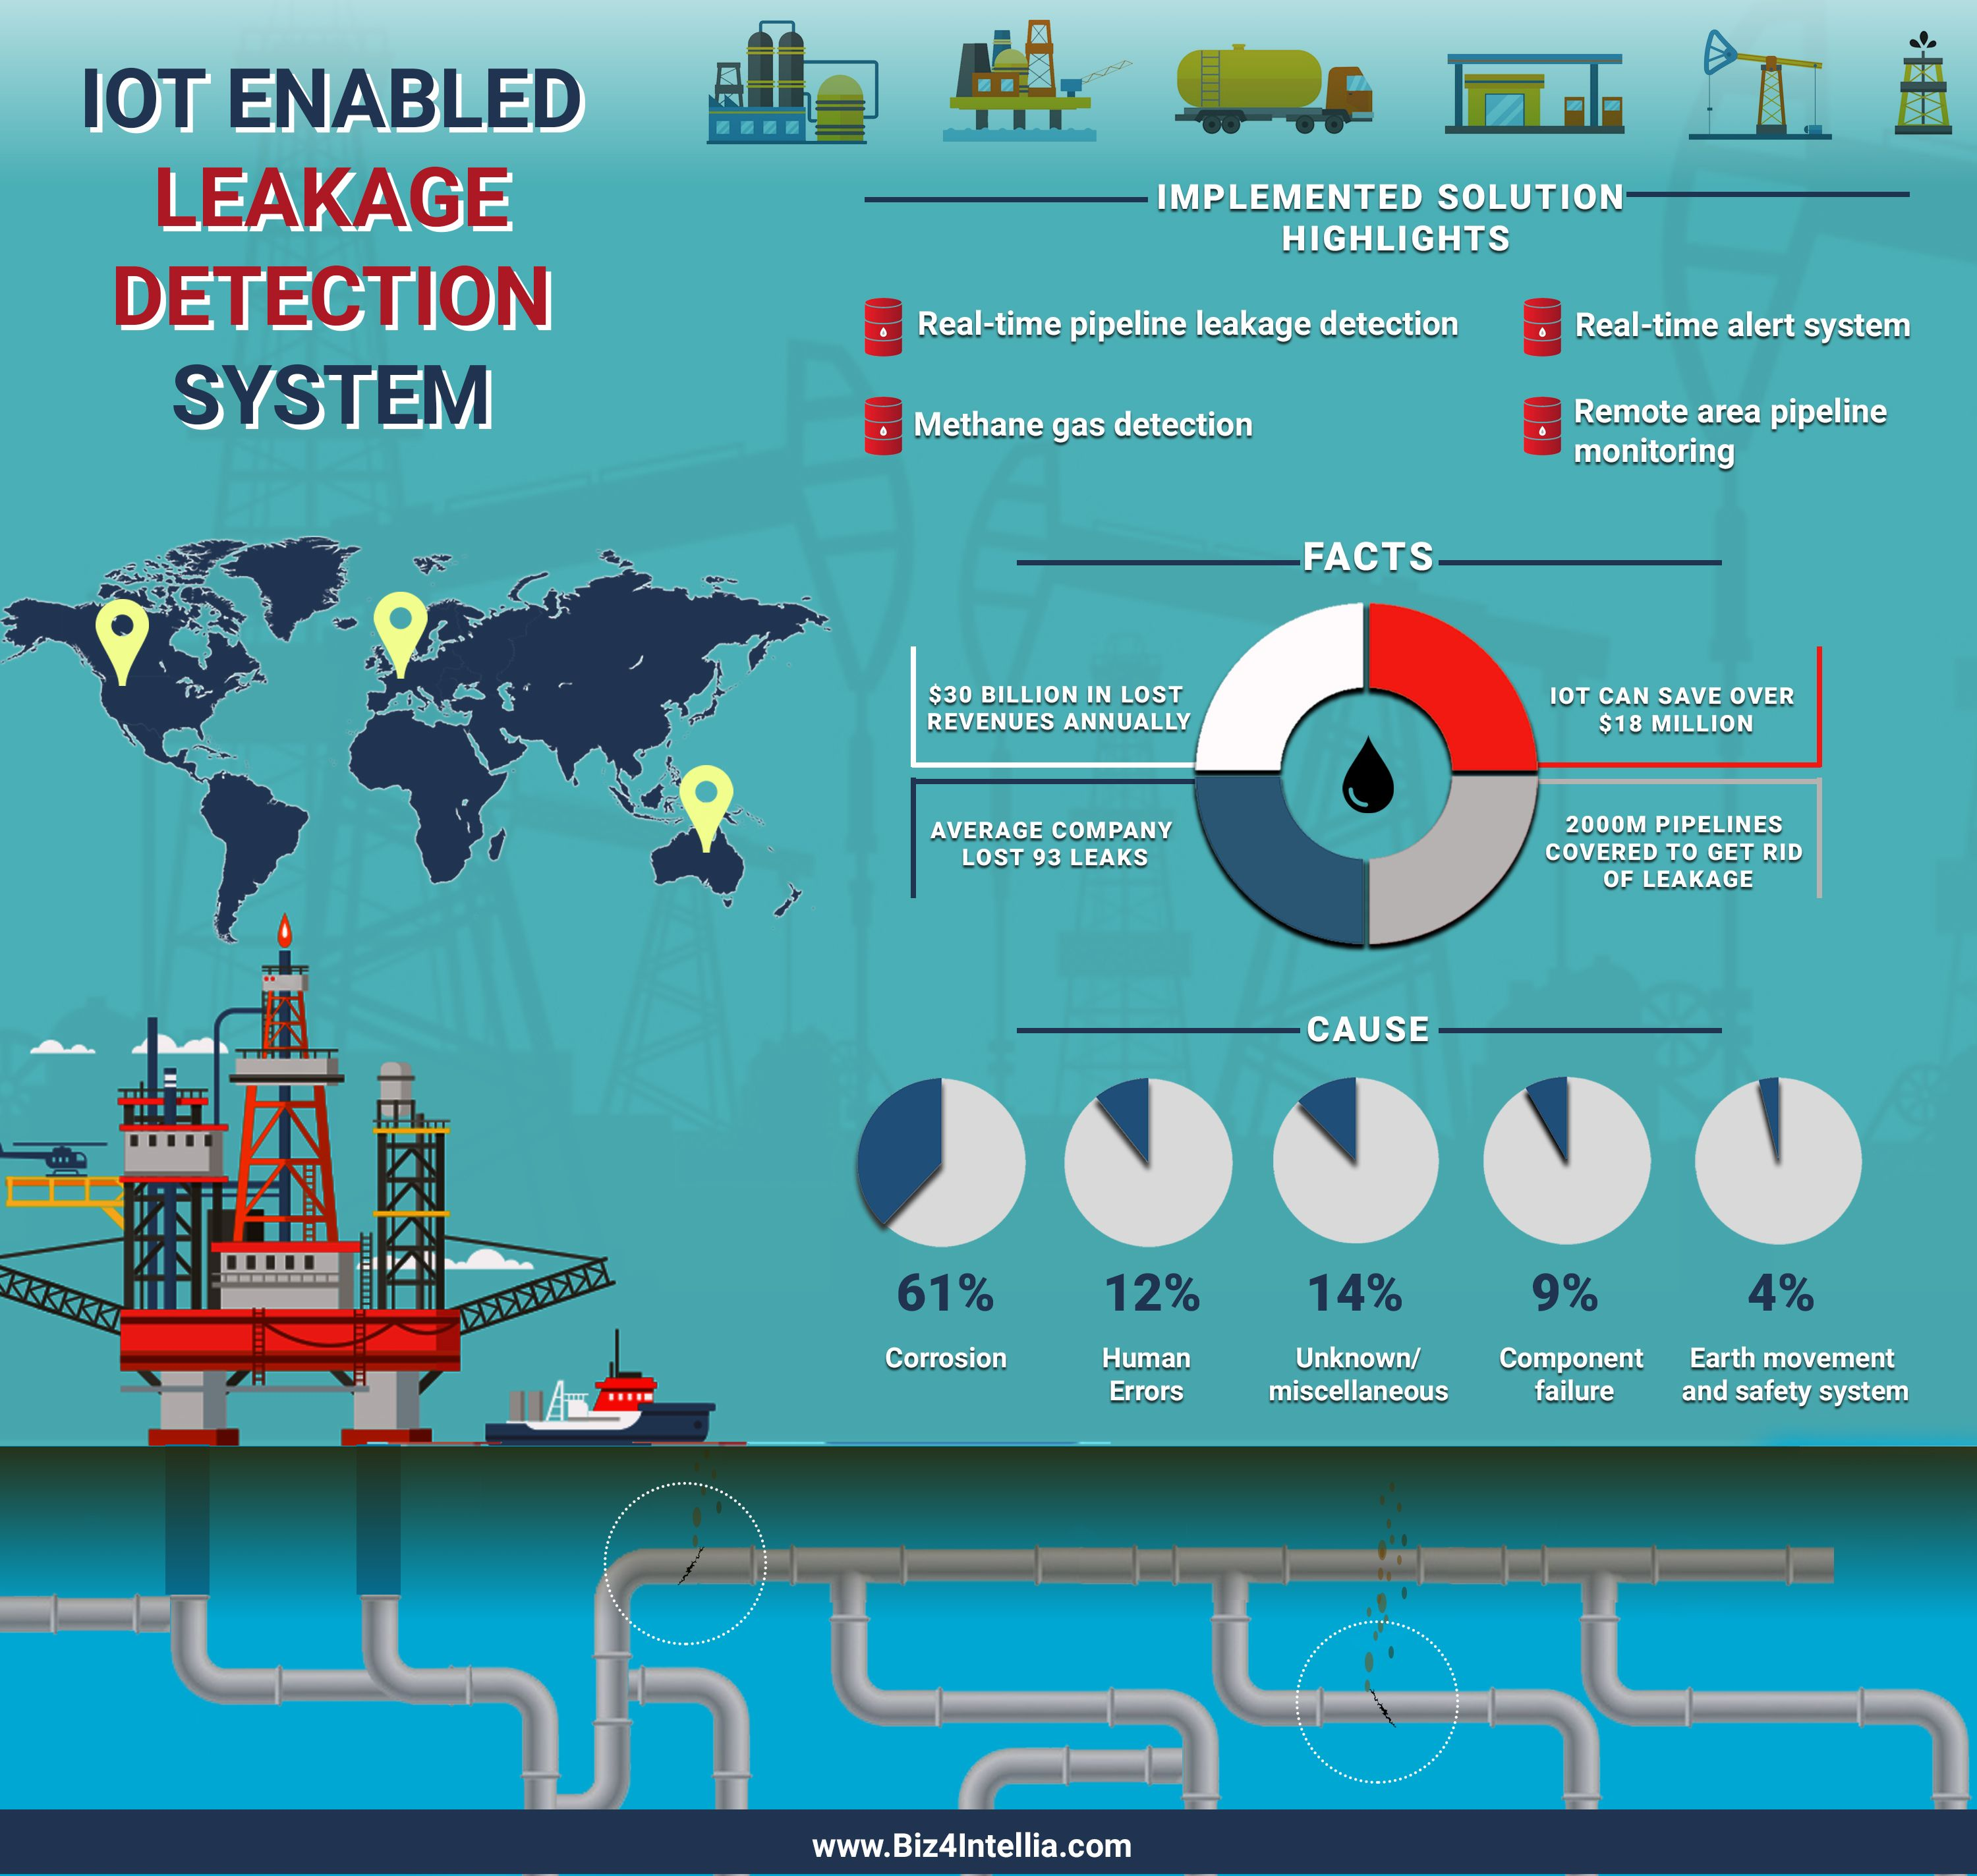 Iot In Oil And Gas Industry Has Improved The Pipeline Leakage Detection System By The Real Time Monitoring Of The Pipelines With Iot Gas Industry Oil And Gas